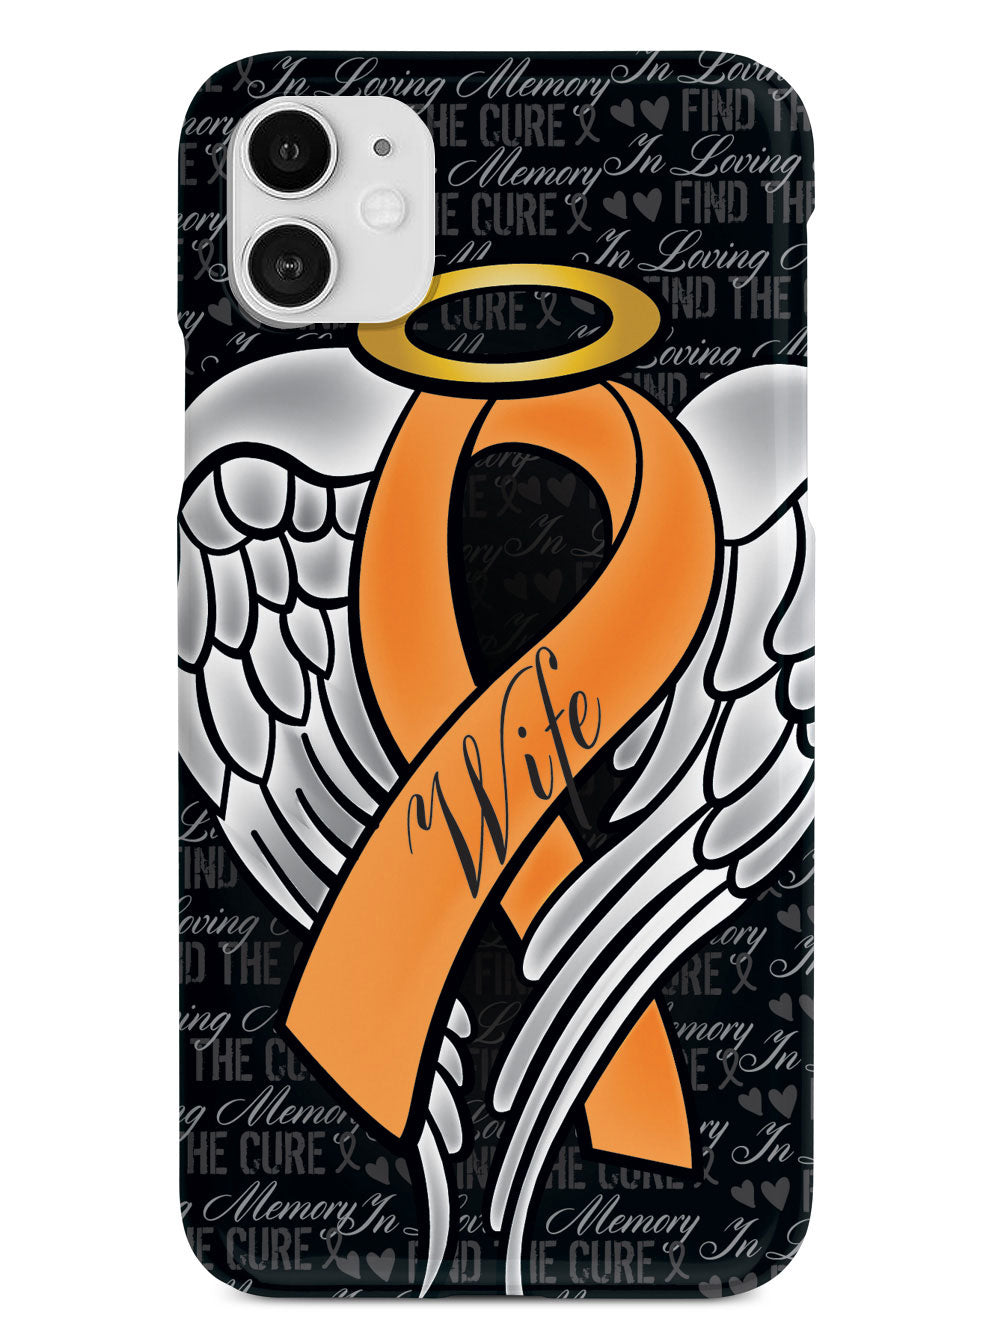 In Loving Memory of My Wife - Orange Ribbon Case